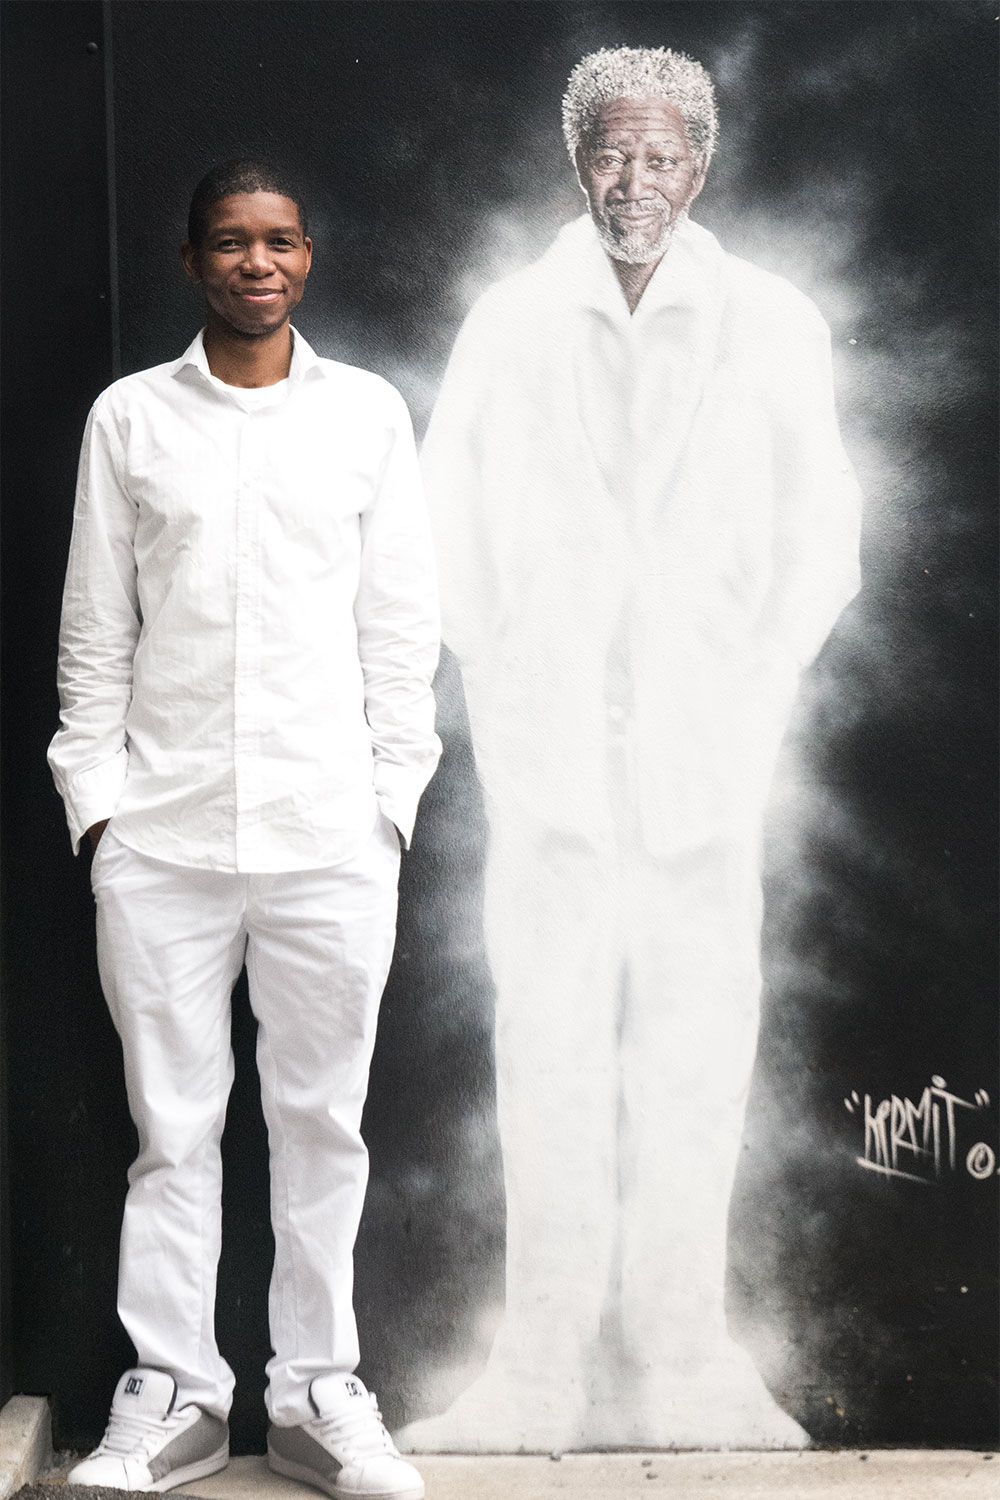 A full length picture of me and Morgan Freeman mural